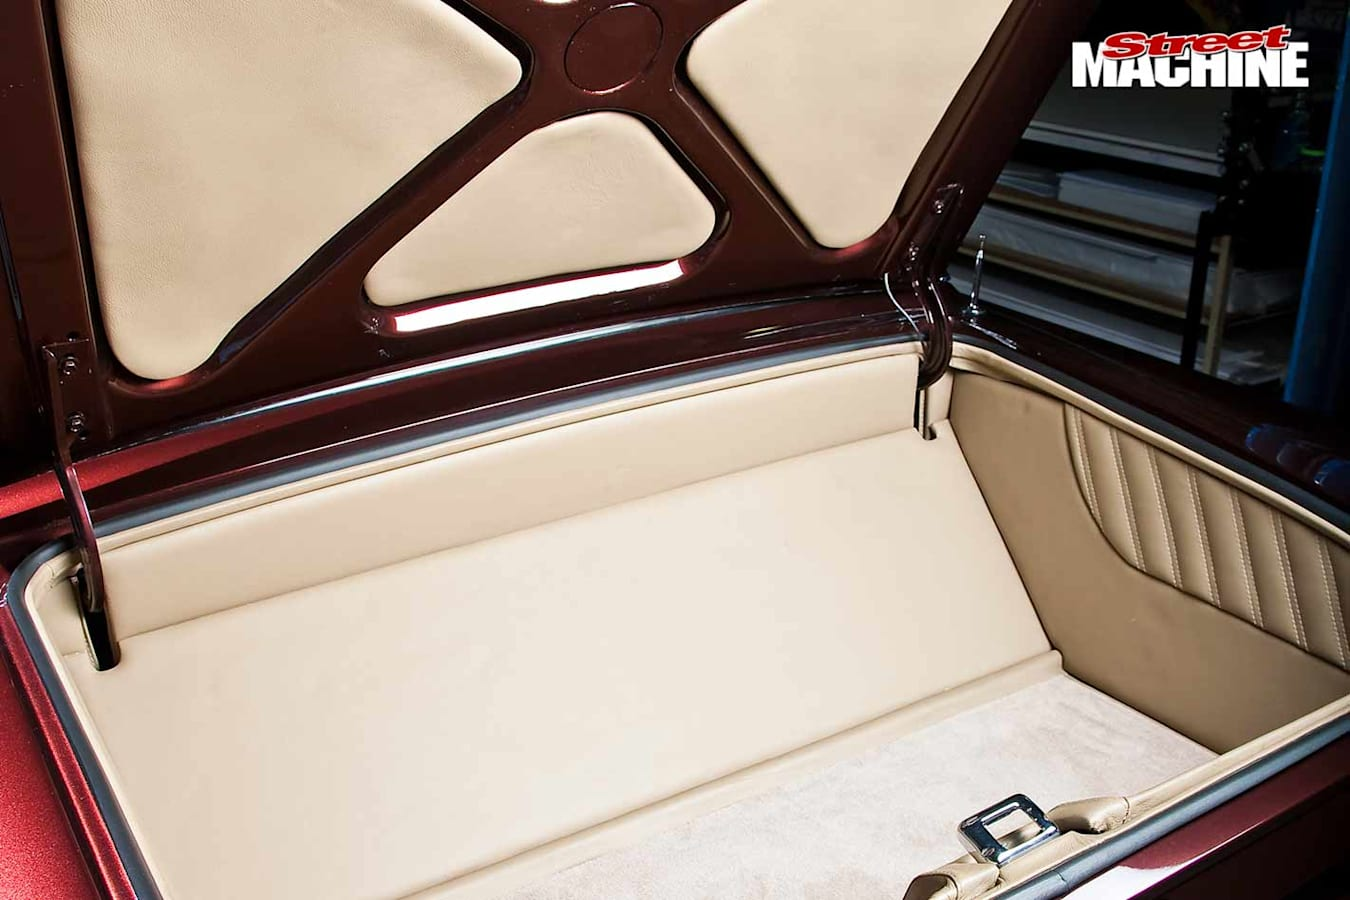 Ford Compact Fairlane boot